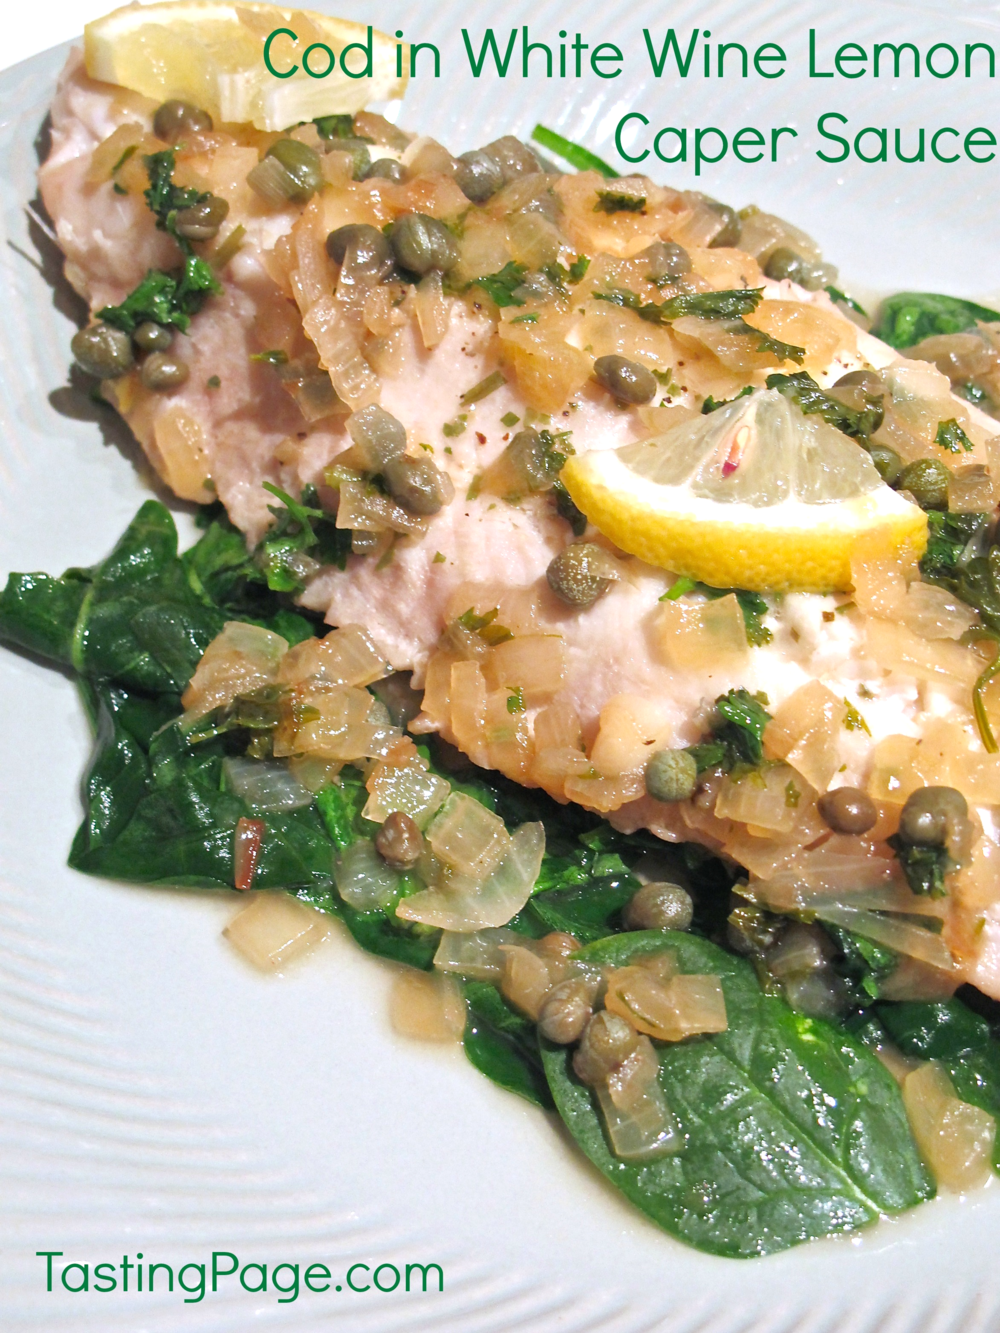 Cod in White Wine Lemon Caper Sauce | Tasting Page